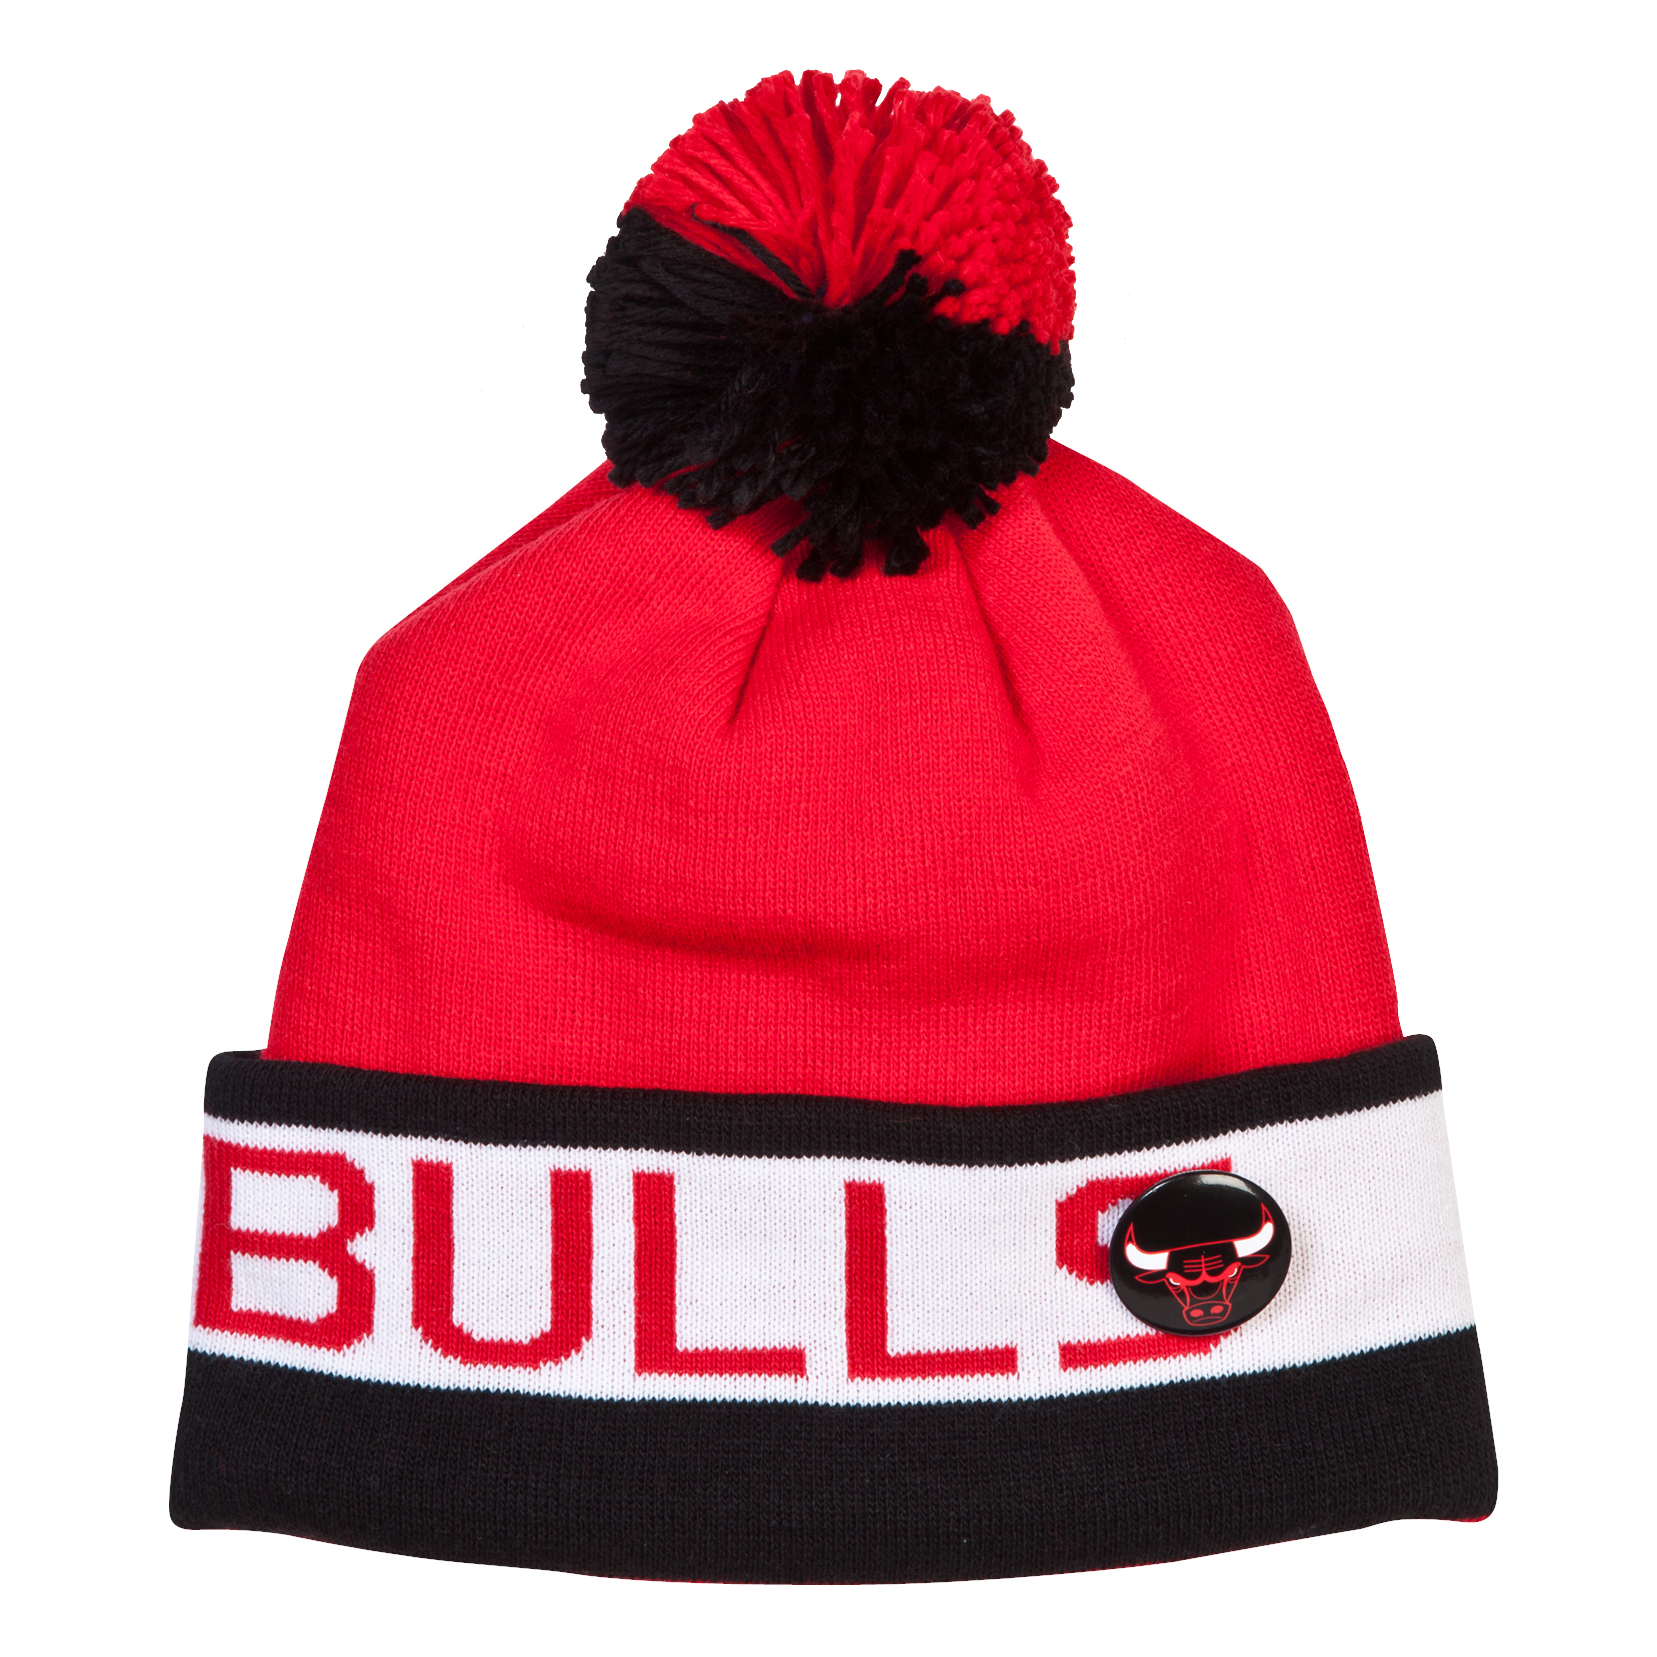 Chicago Bulls Vintage Block Cuffed Knit Bobble Hat Red